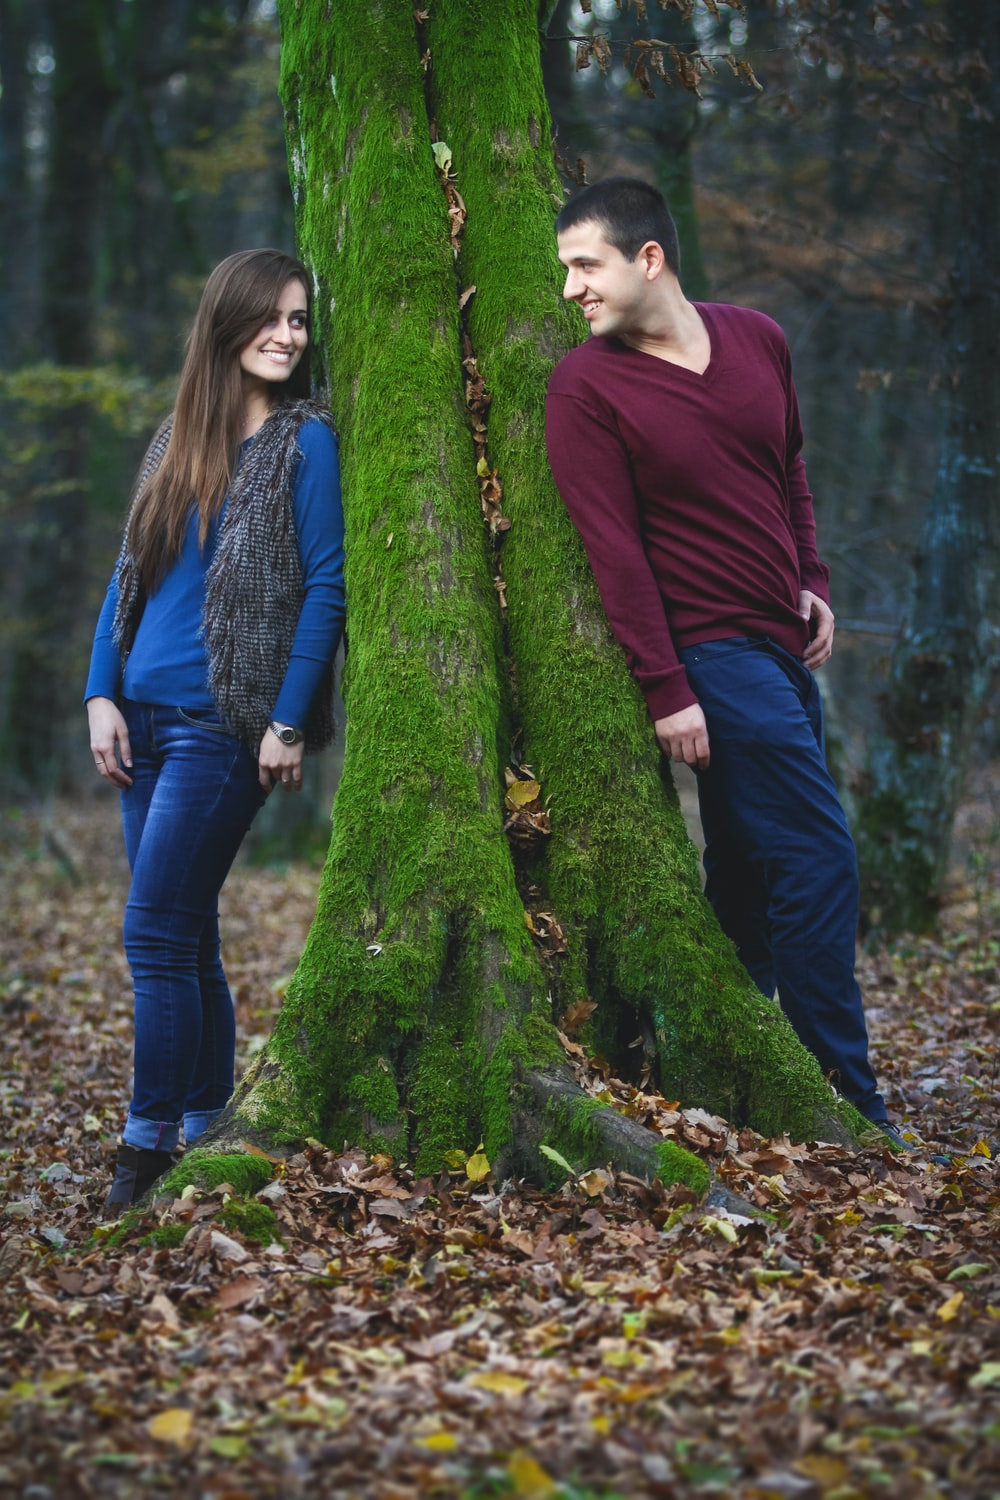 woman in maroon long sleeve shirt and blue denim jeans standing beside green moss covered tree